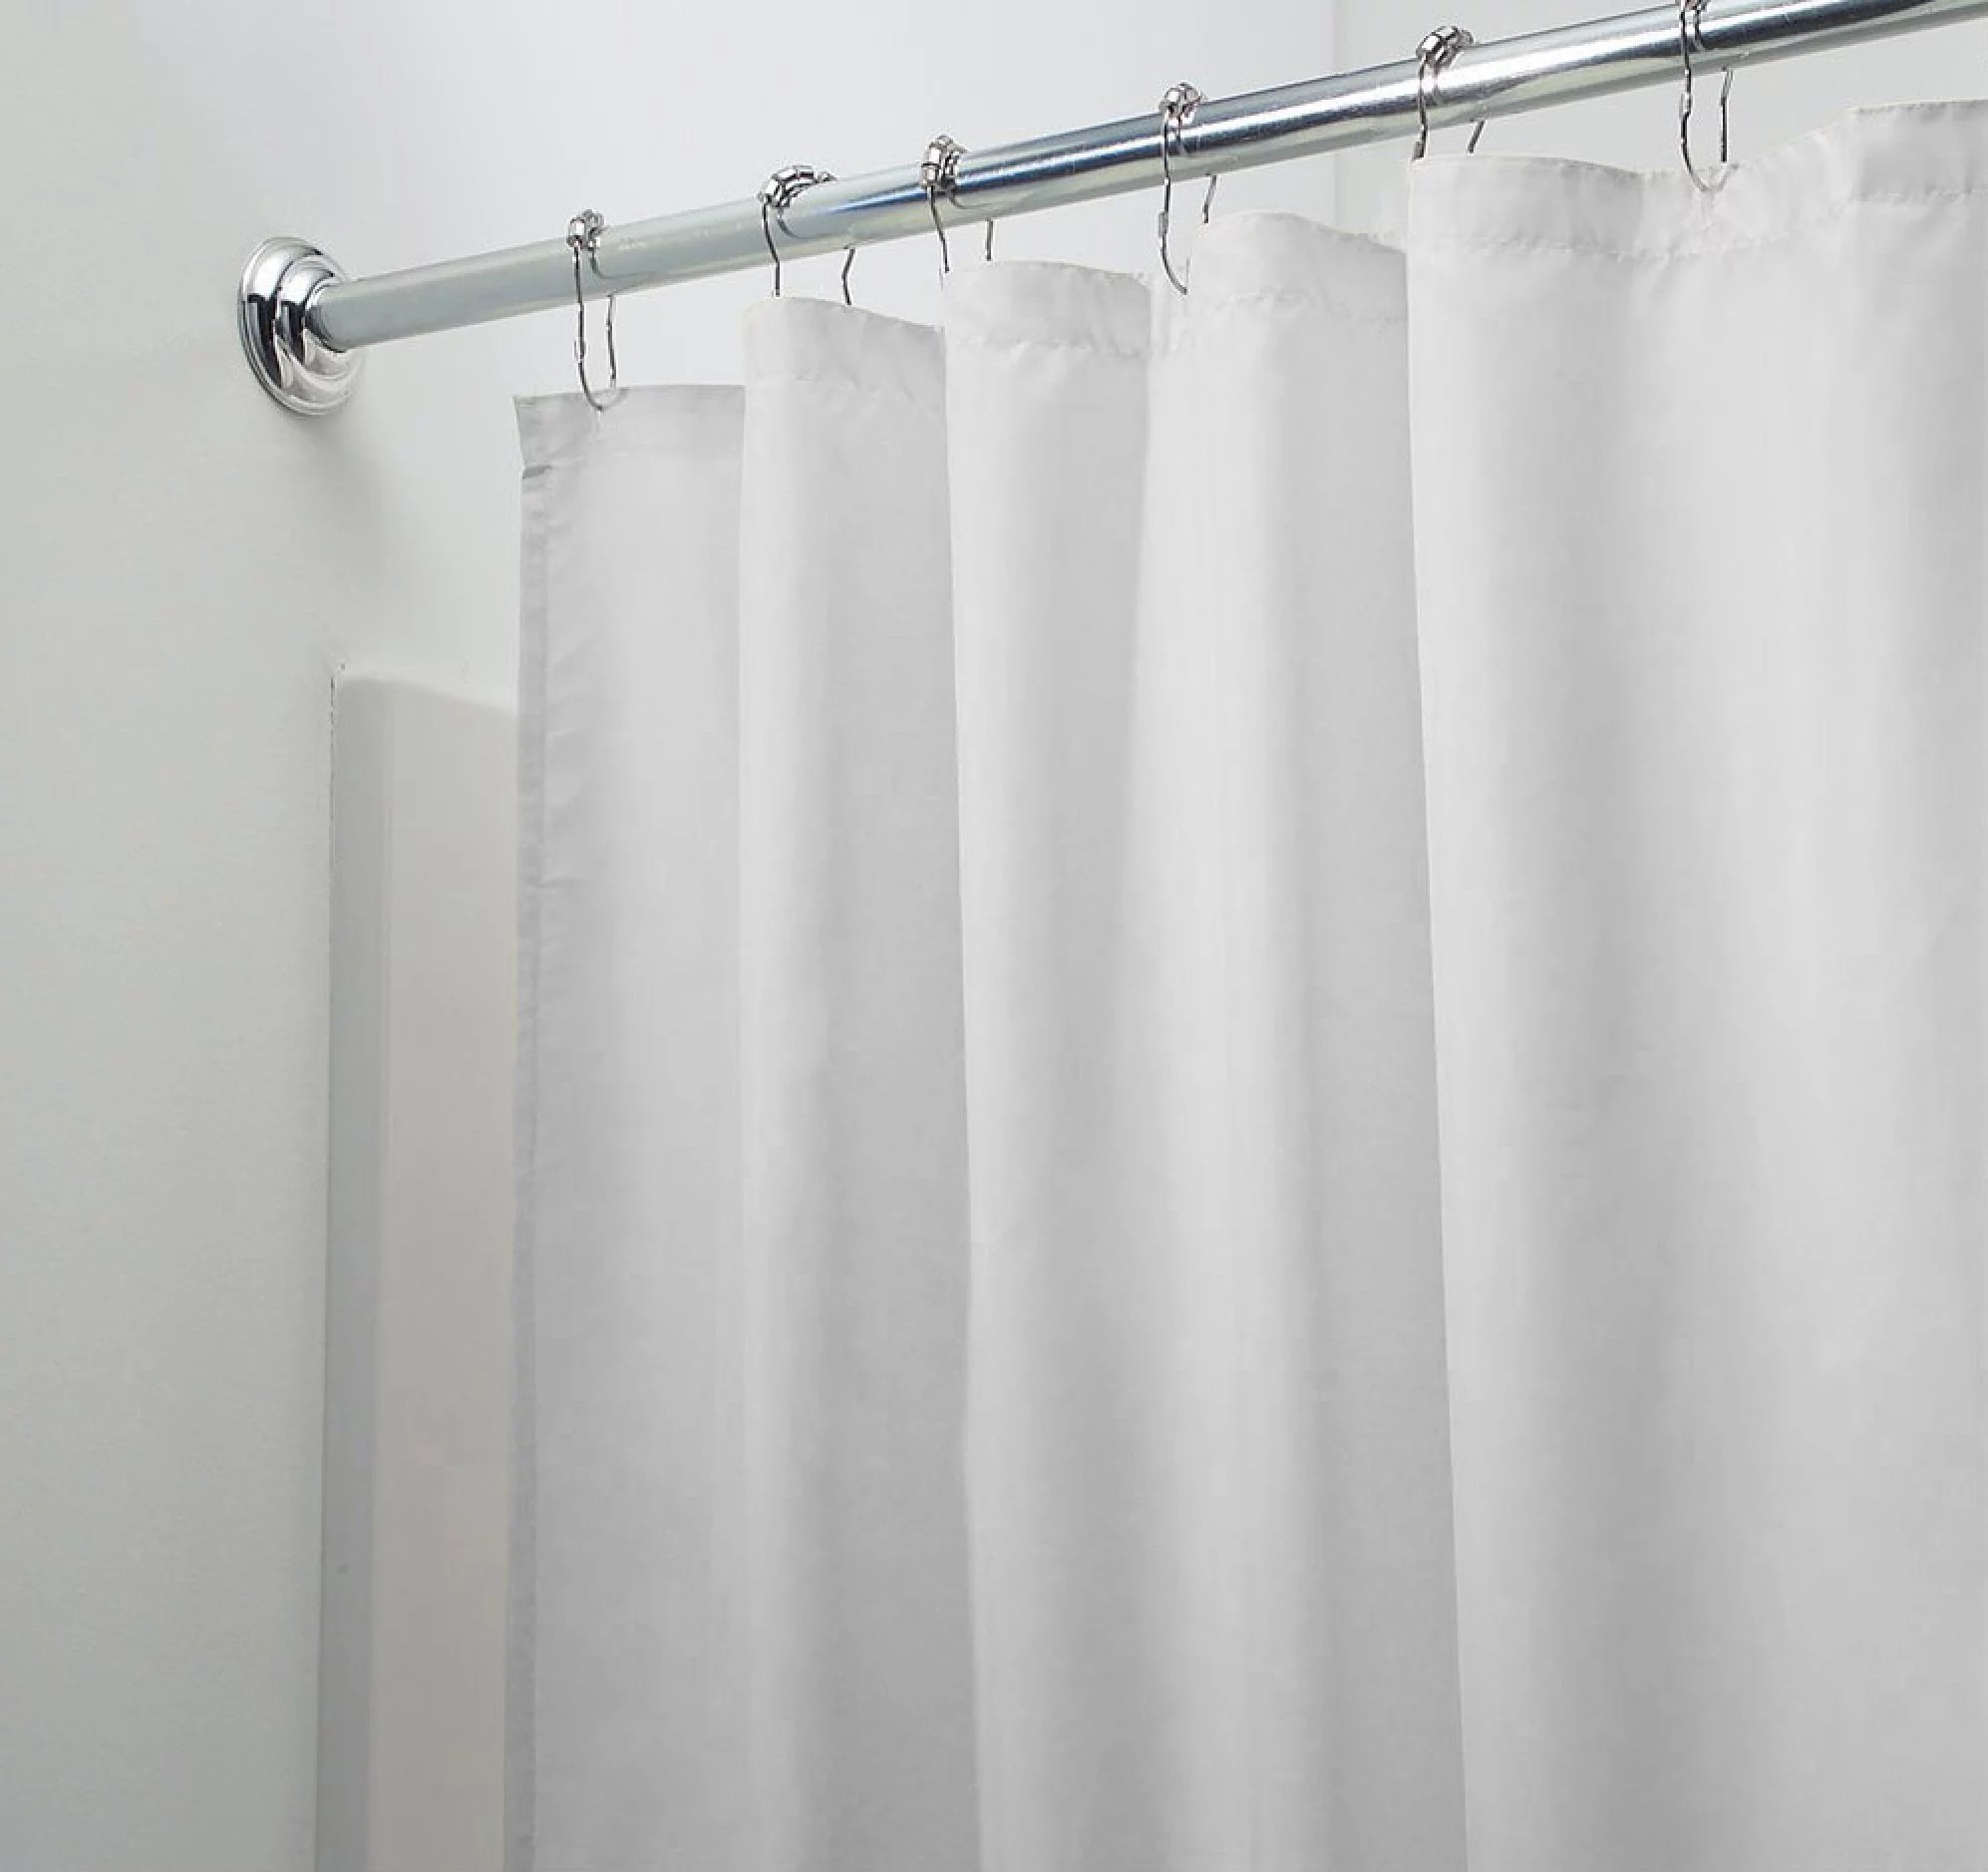 mold mildew resistant fabric shower curtain liner white